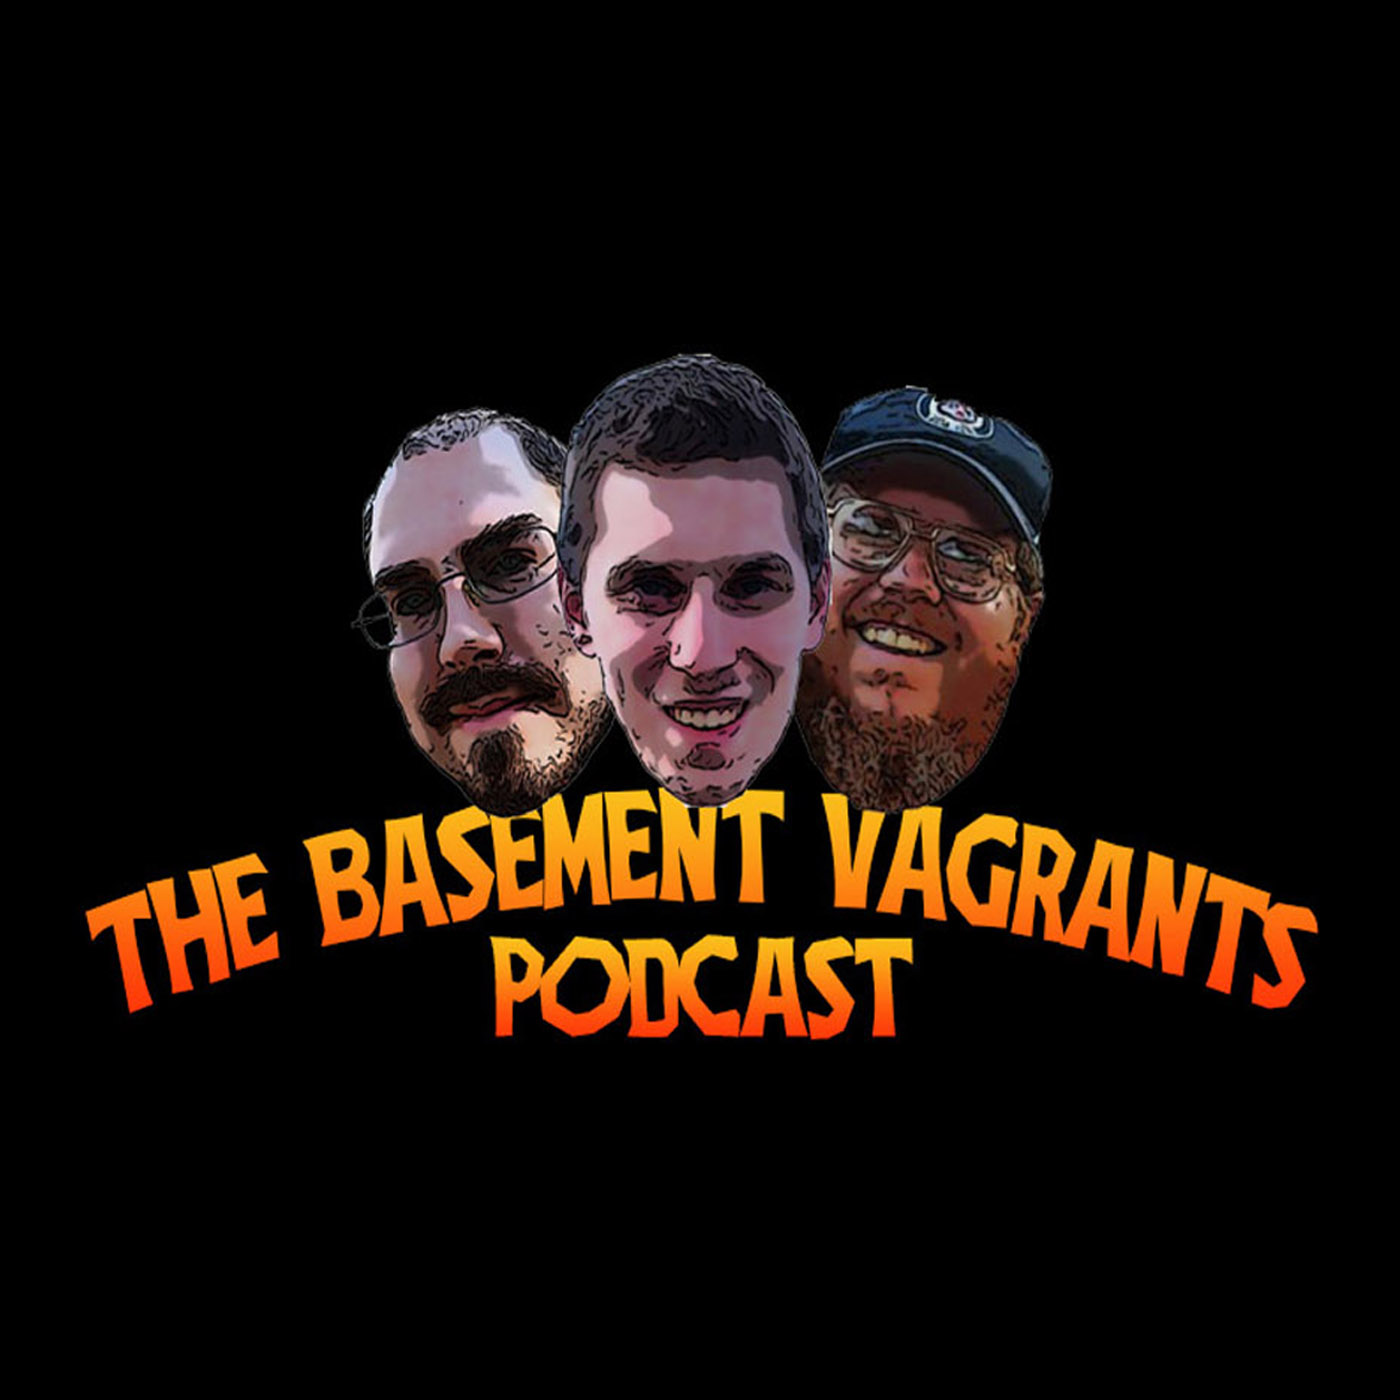 The Basement Vagrants Podcast